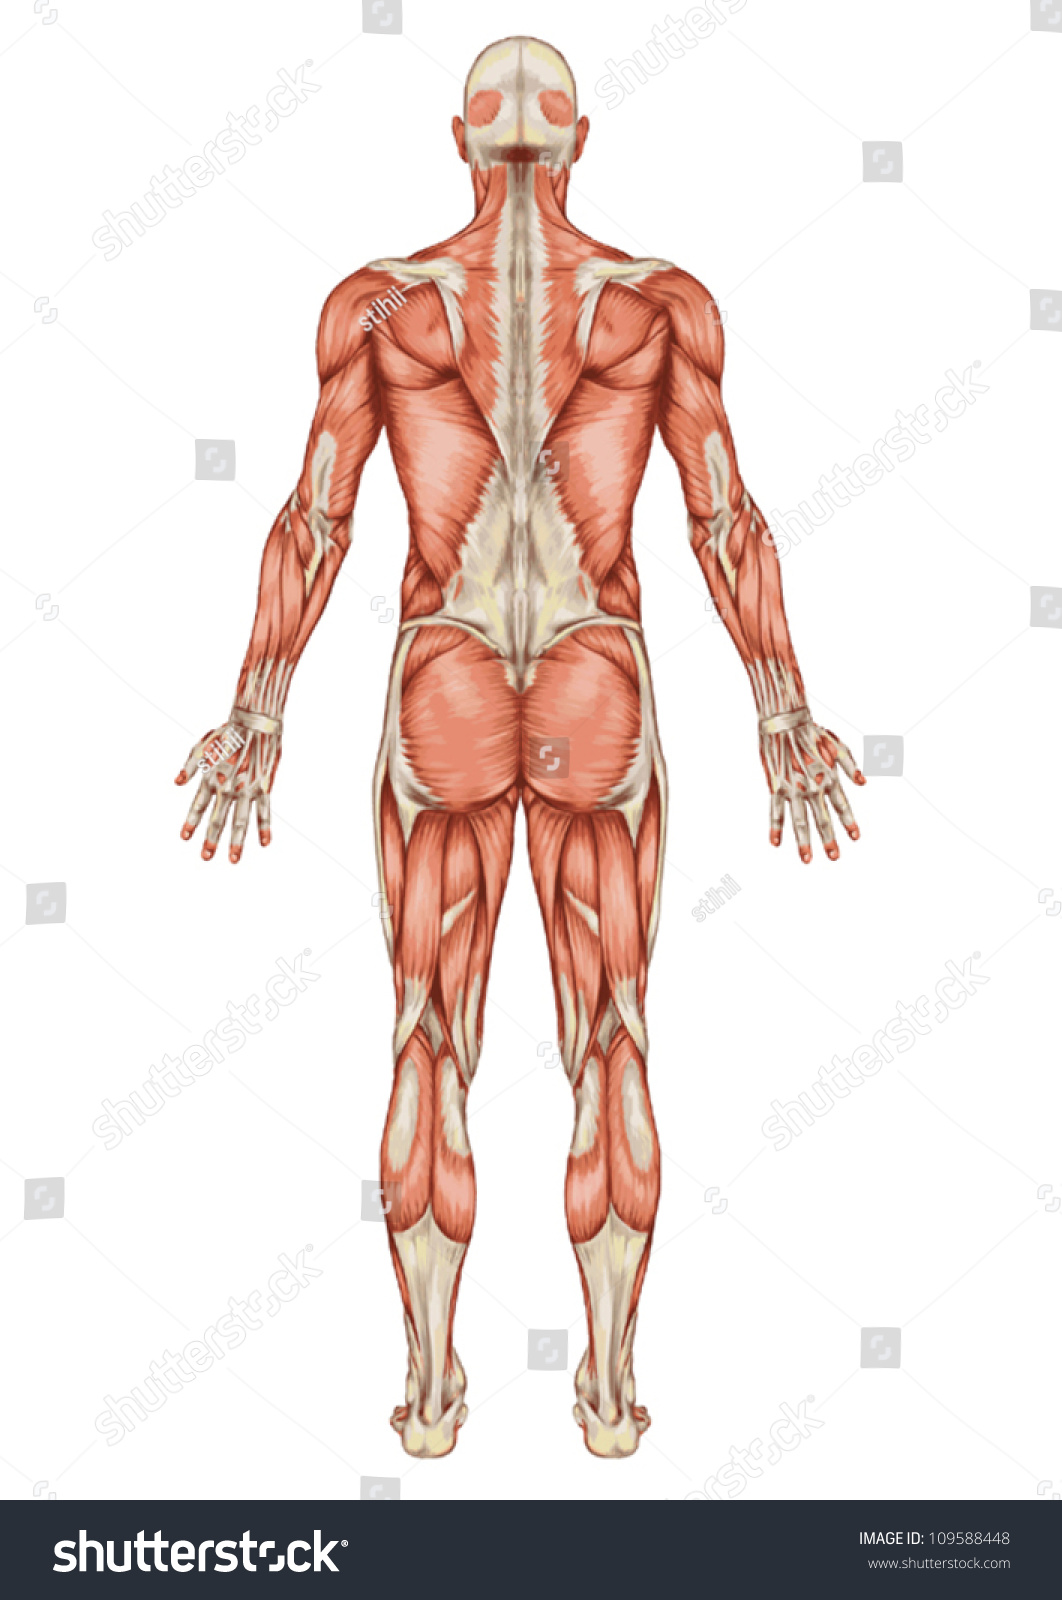 Anatomy Male Muscular System Posterior View Stock Vector (2018 ...